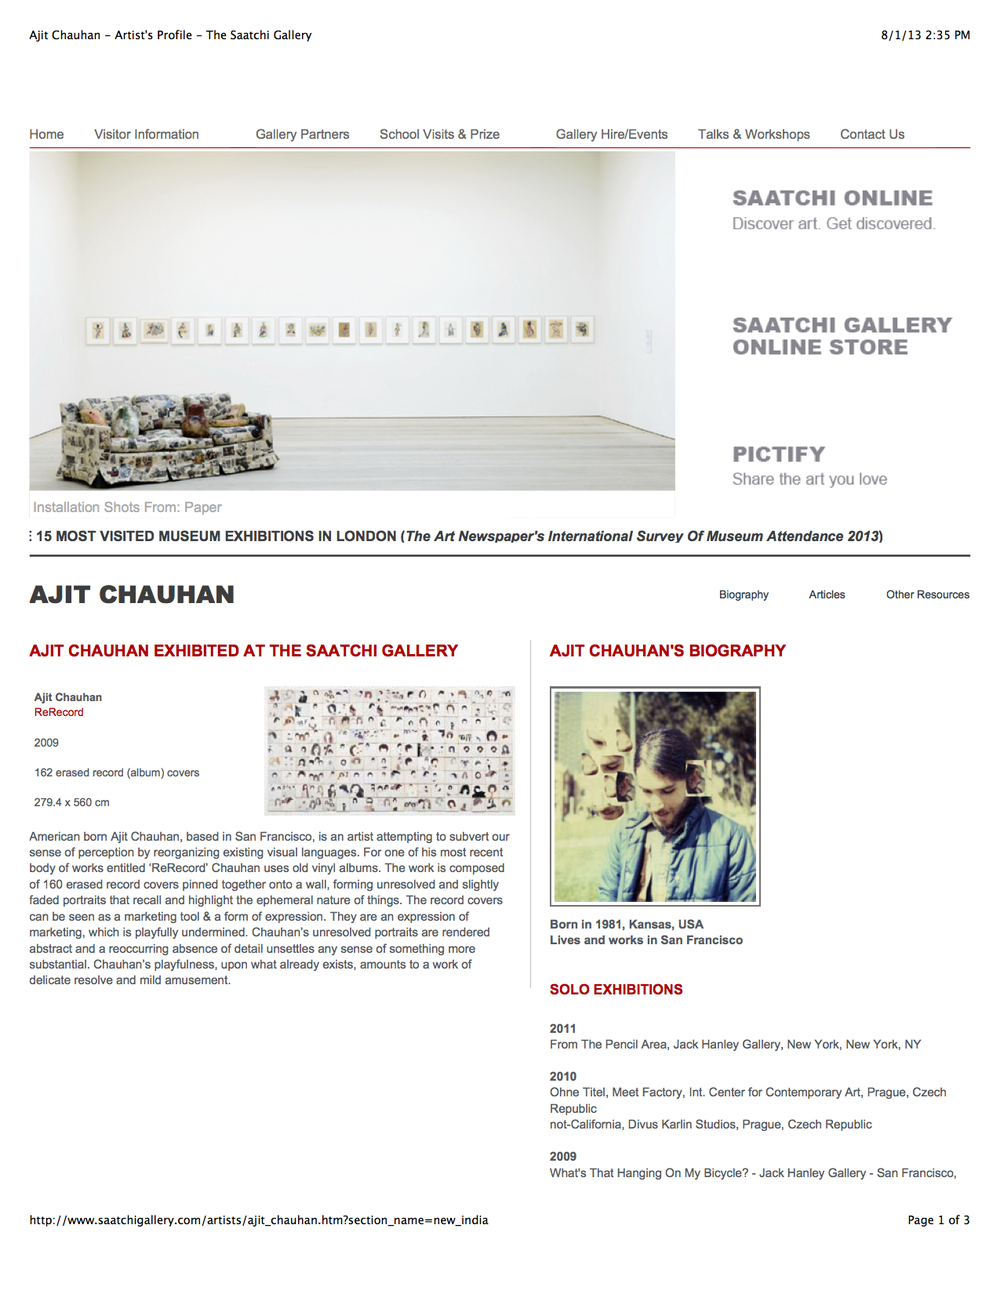 Ajit Chauhan - Artist's Profile - The Saatchi Gallery.jpg